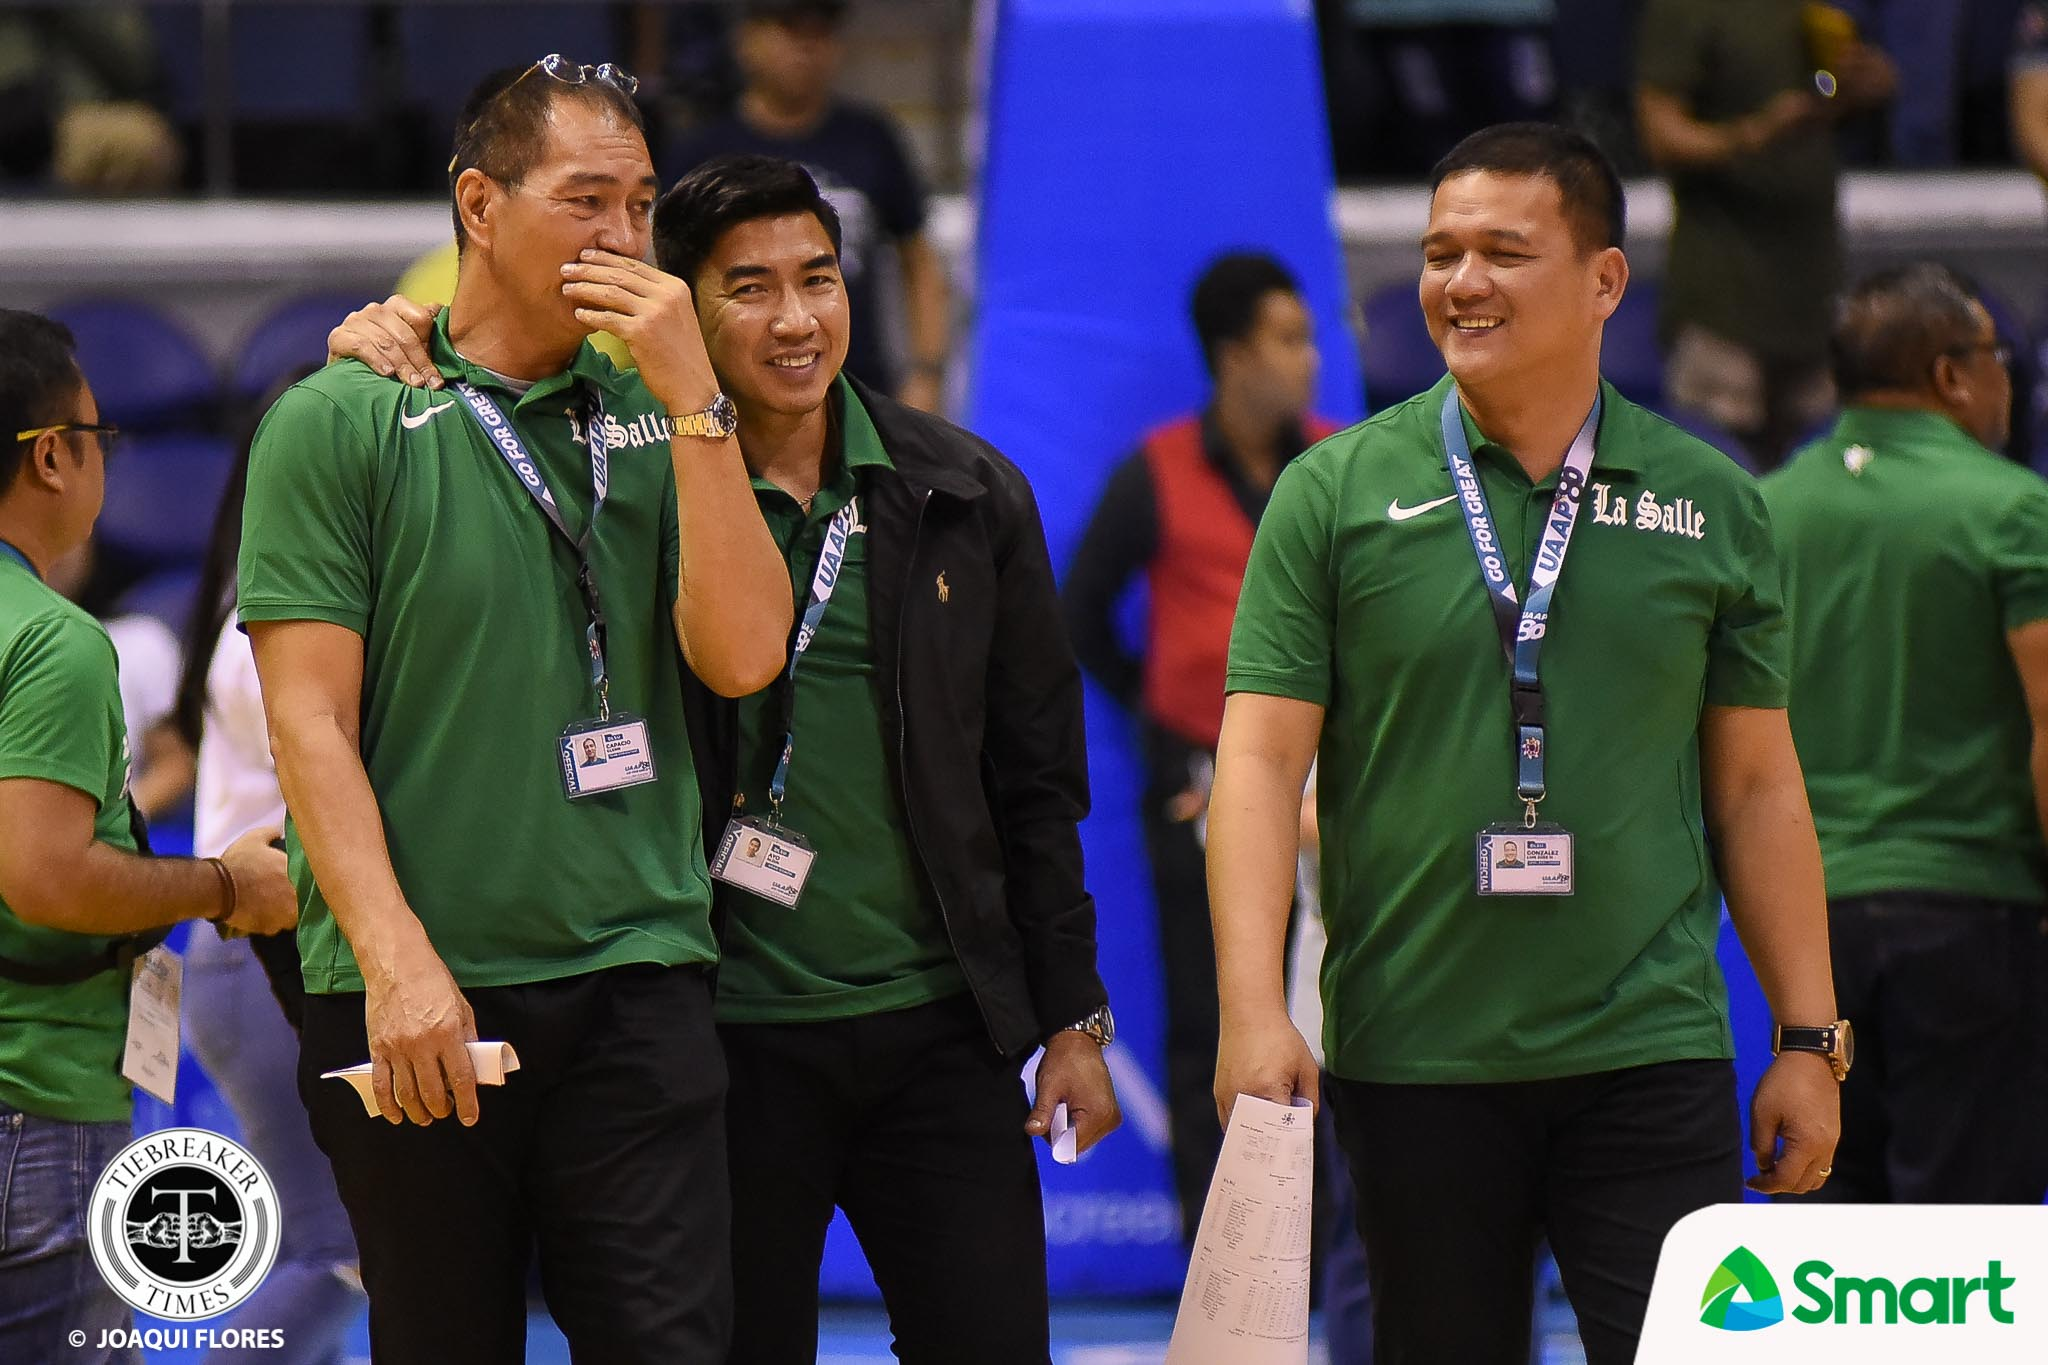 Philippine Sports News - Tiebreaker Times Green Archers move on from Aldin Ayo; Luis Gonzalez to be named as head coach Basketball DLSU News UAAP  UAAP Season 80 Men's Basketball UAAP Season 80 Louie Gonzalez Glenn Capacio Eduardo Cojuangco Jr. DLSU Men's Basketball Aldin Ayo